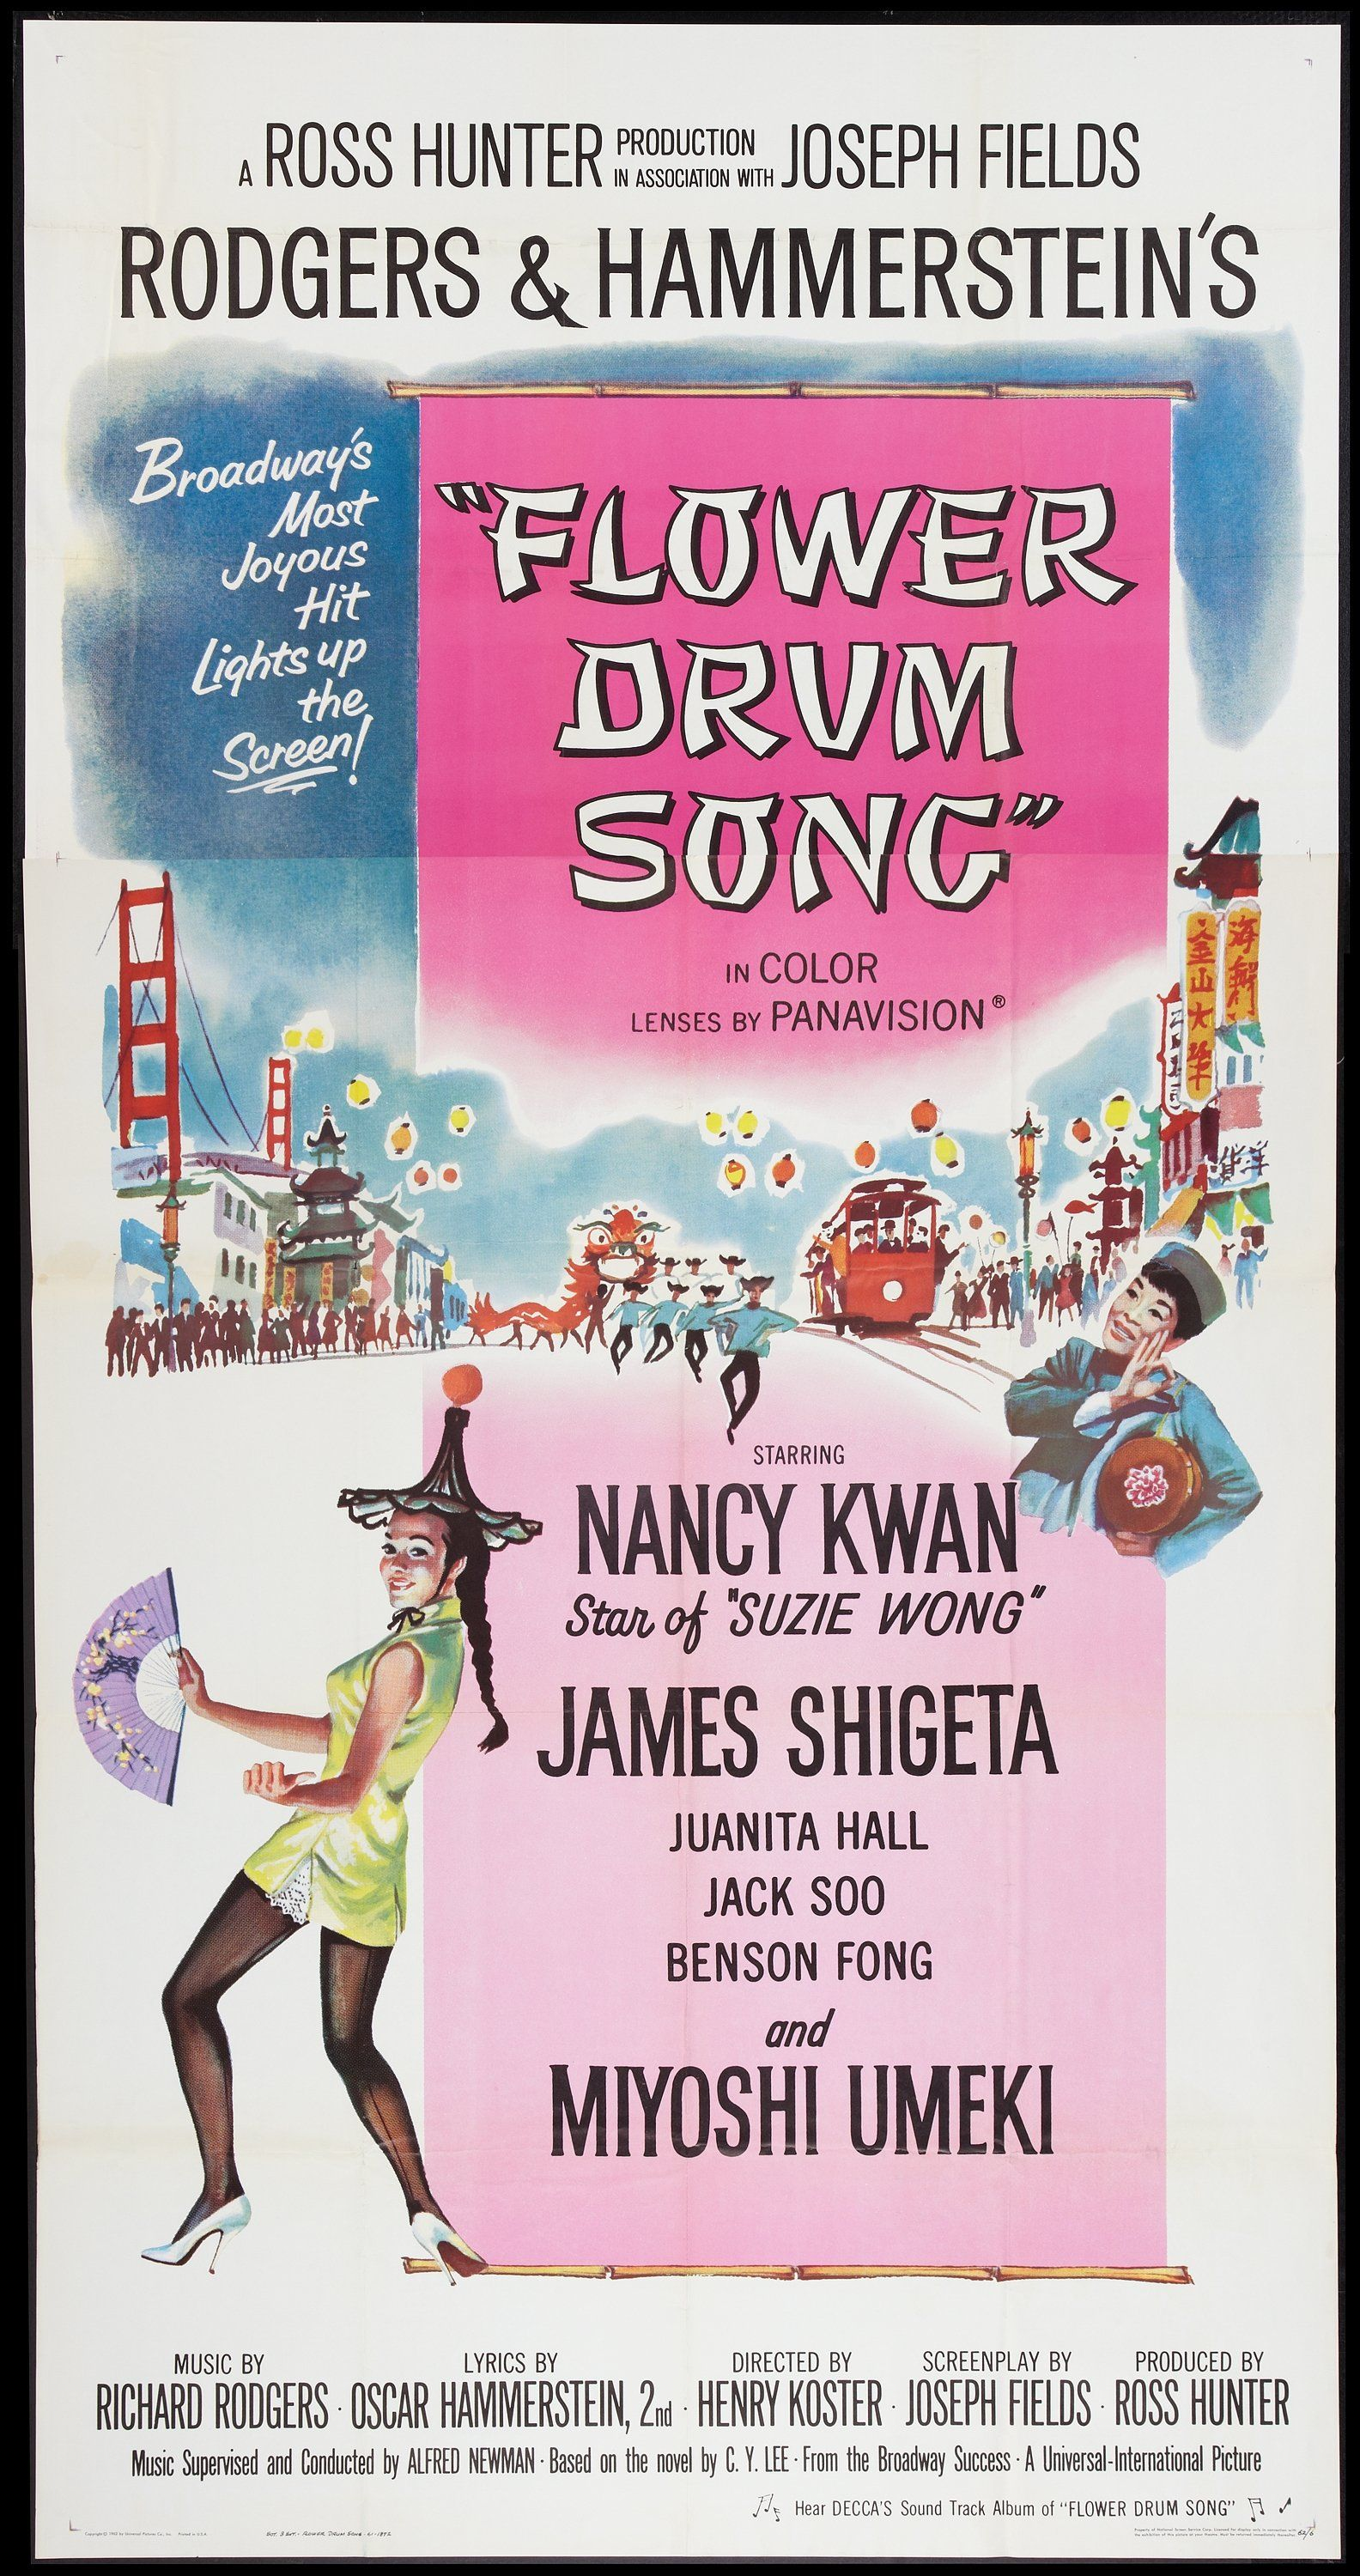 Flower Drum Song (1961) Stars Nancy Kwan, James Shigeta